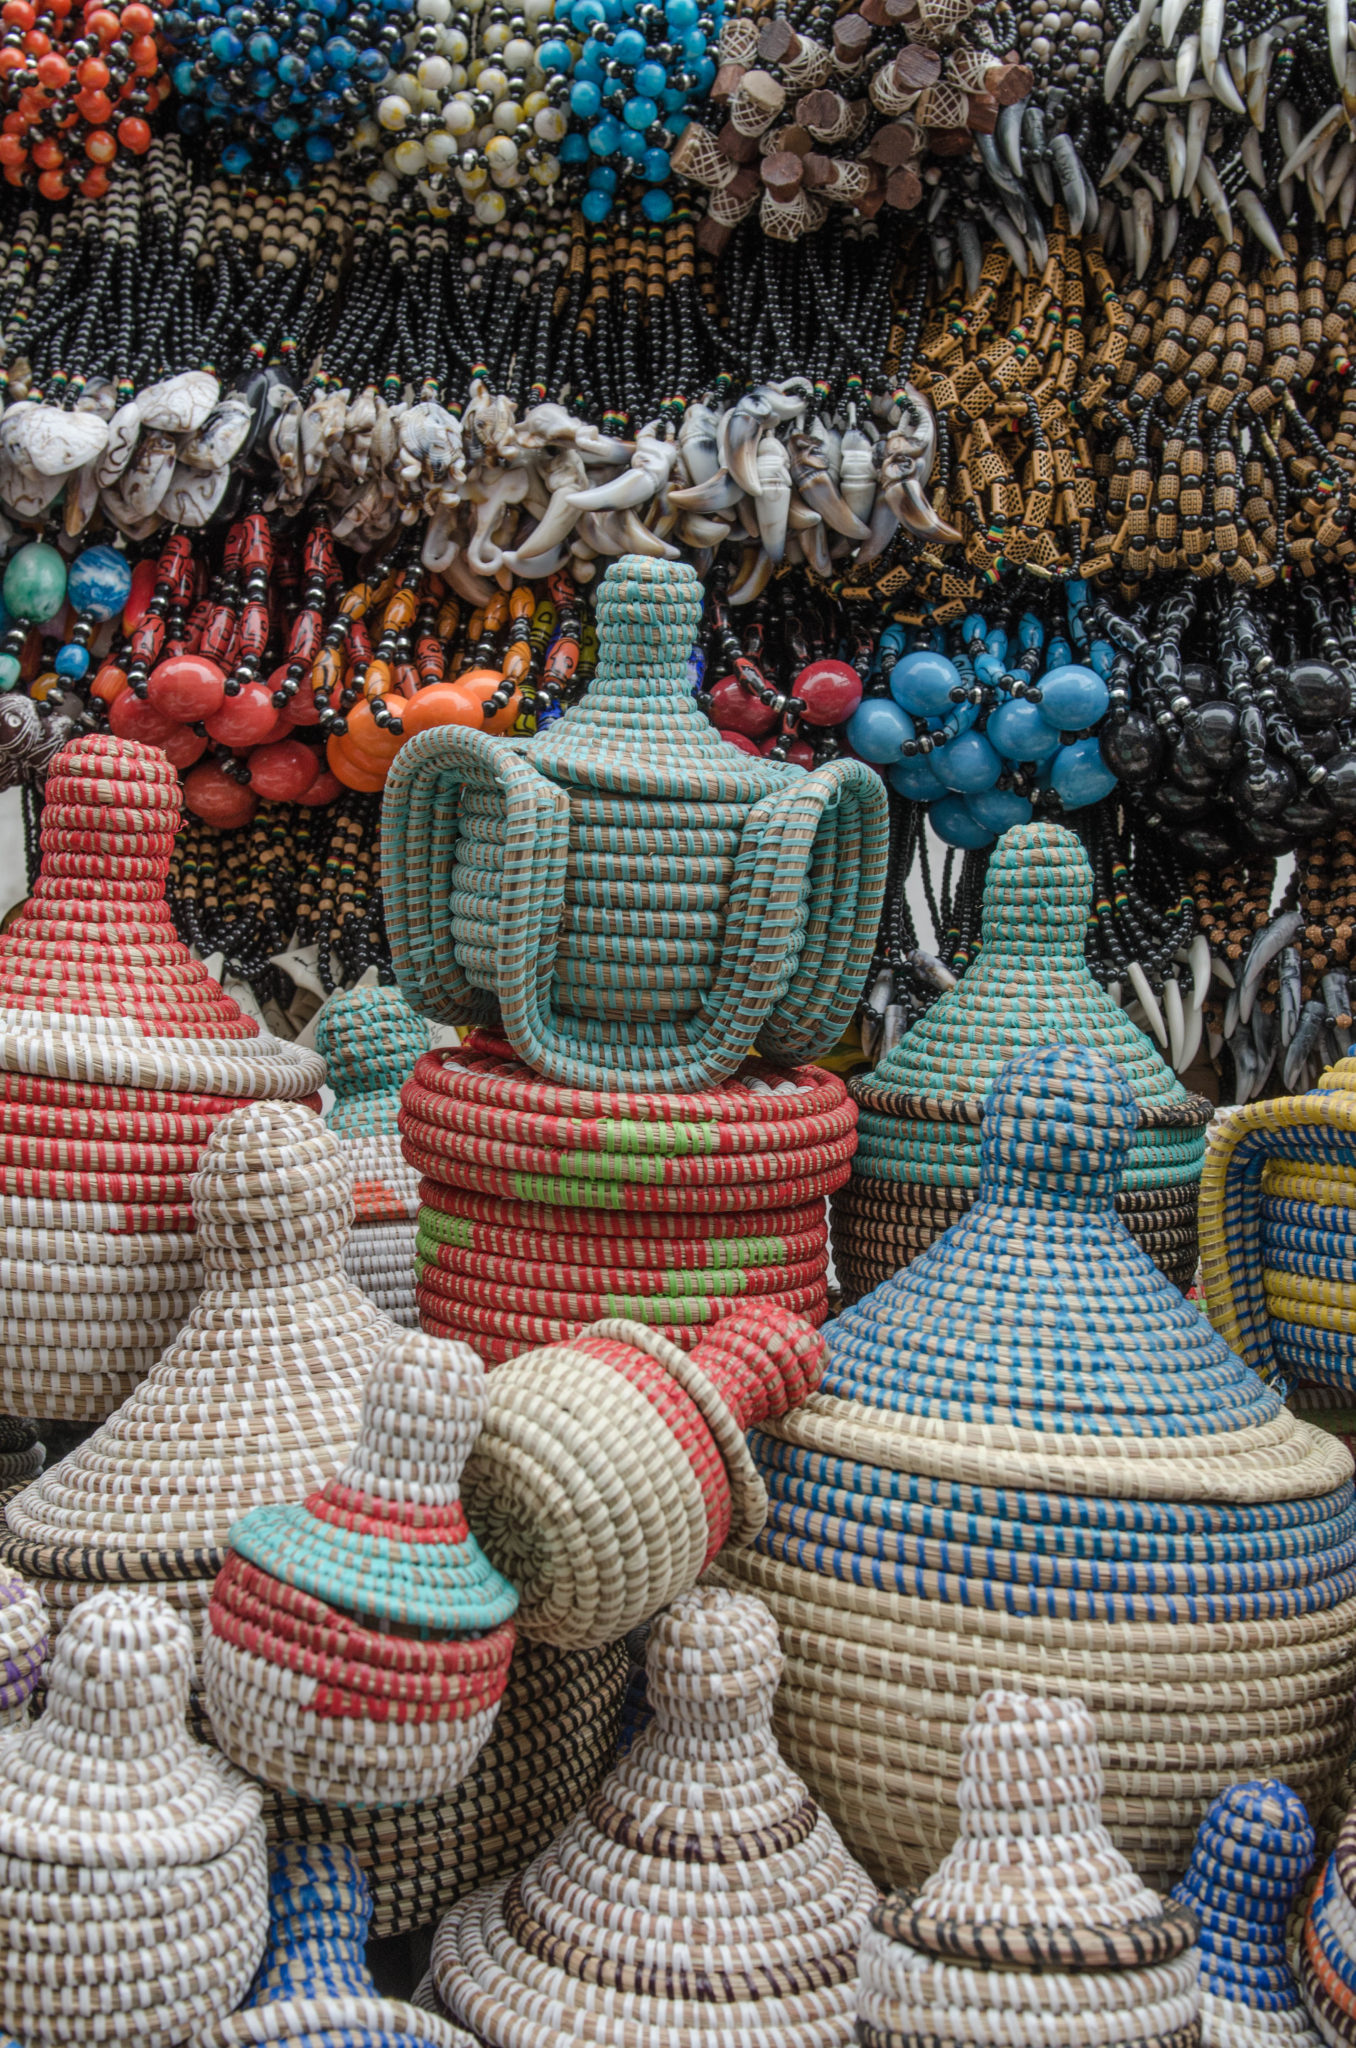 Senegal Travel Guide: These colourful baskets are probably the best items to take home as a souvenir